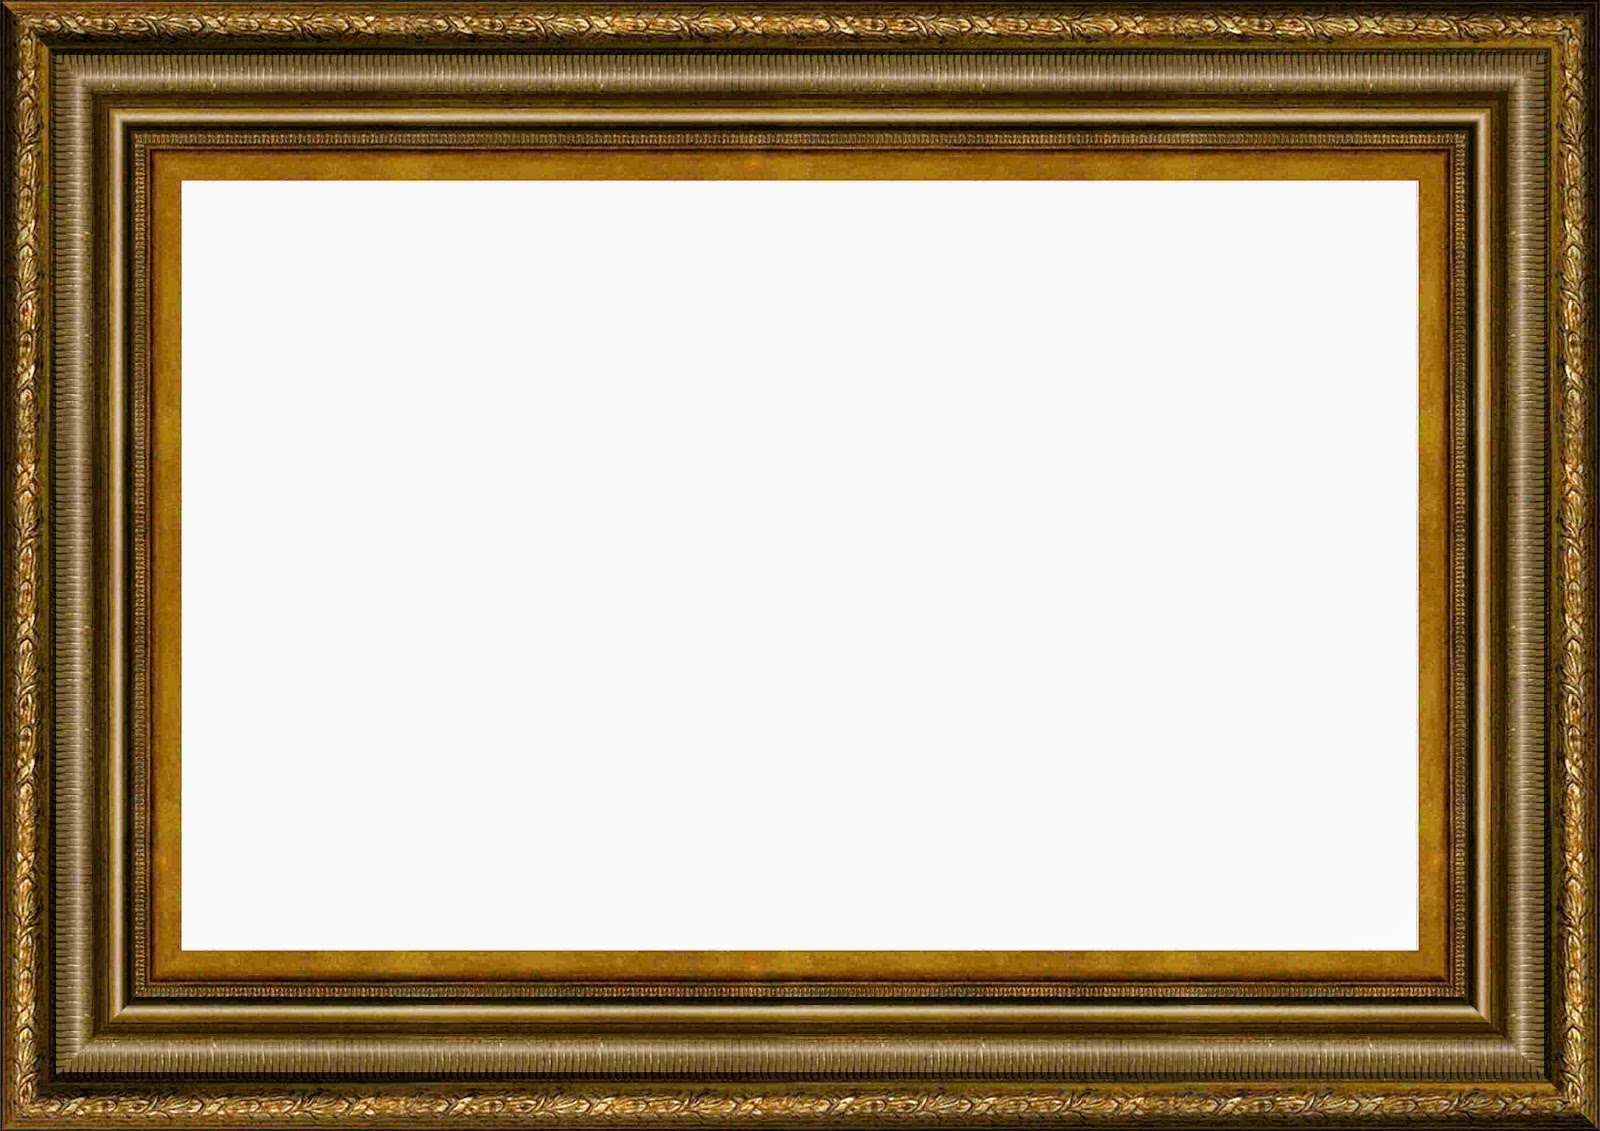 Graphics and Folk Assam: Wood and Metal Frame for Wooden Picture Frame Clipart  599kxo